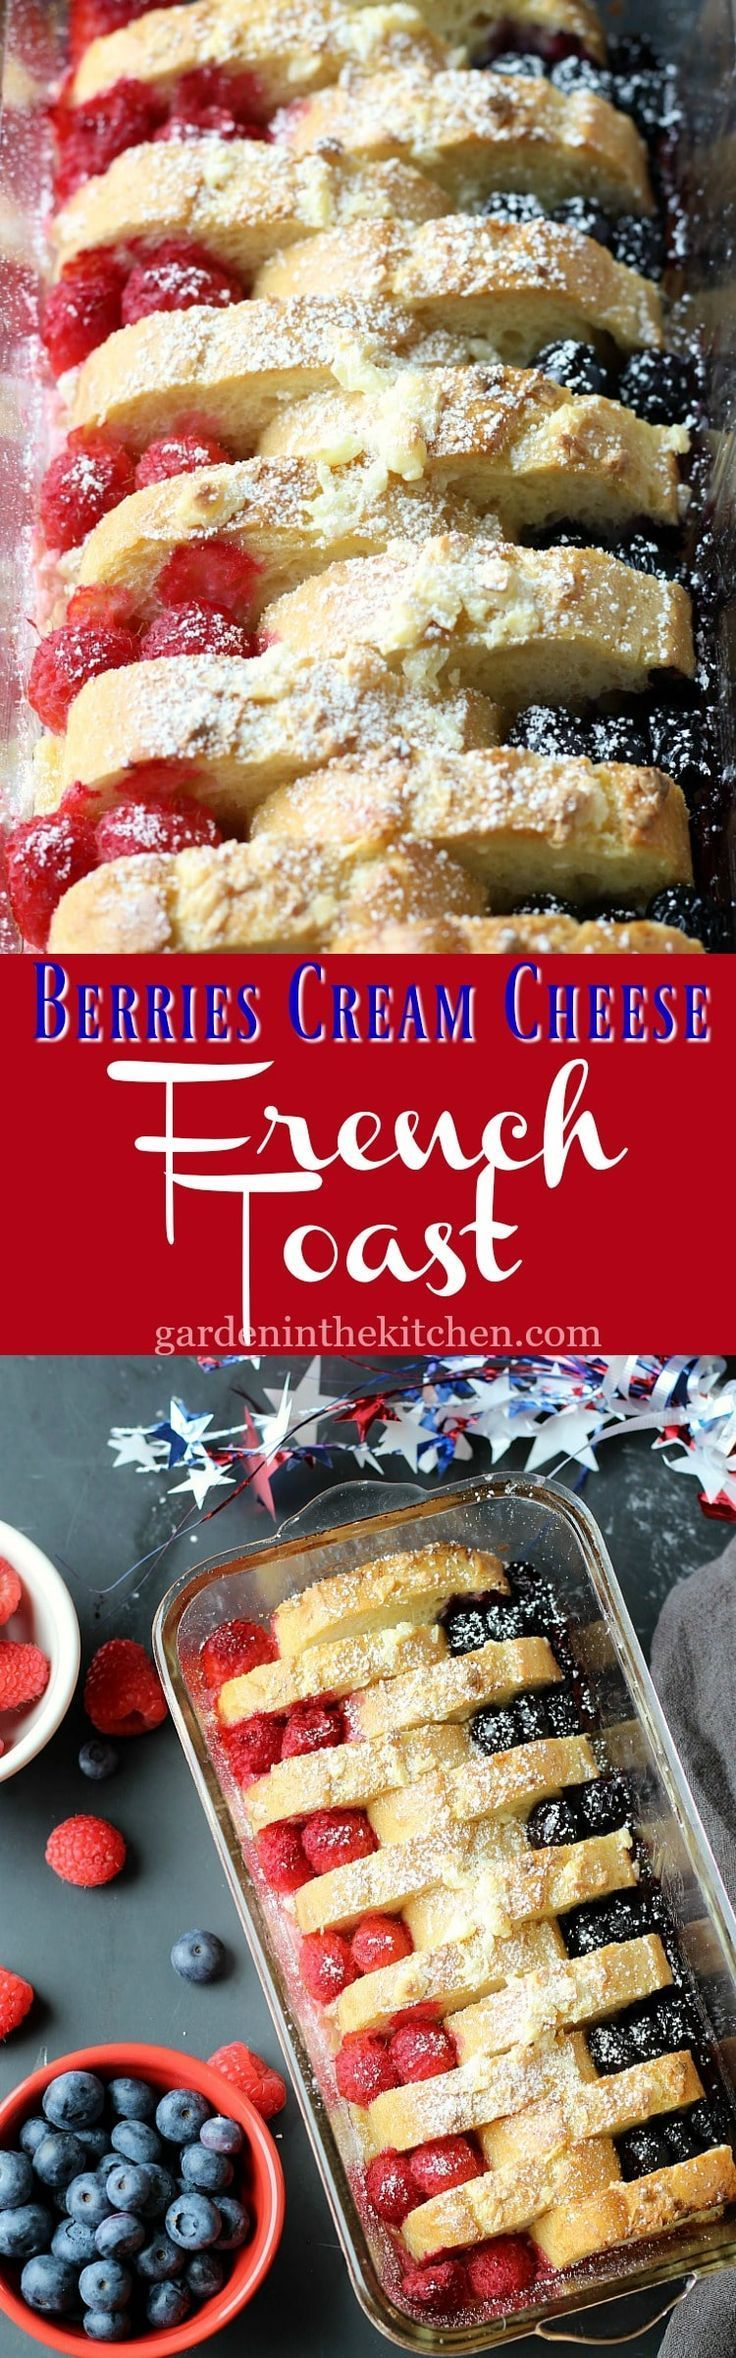 Photo of Berries Cream Cheese French Toast | Garden in the Kitchen